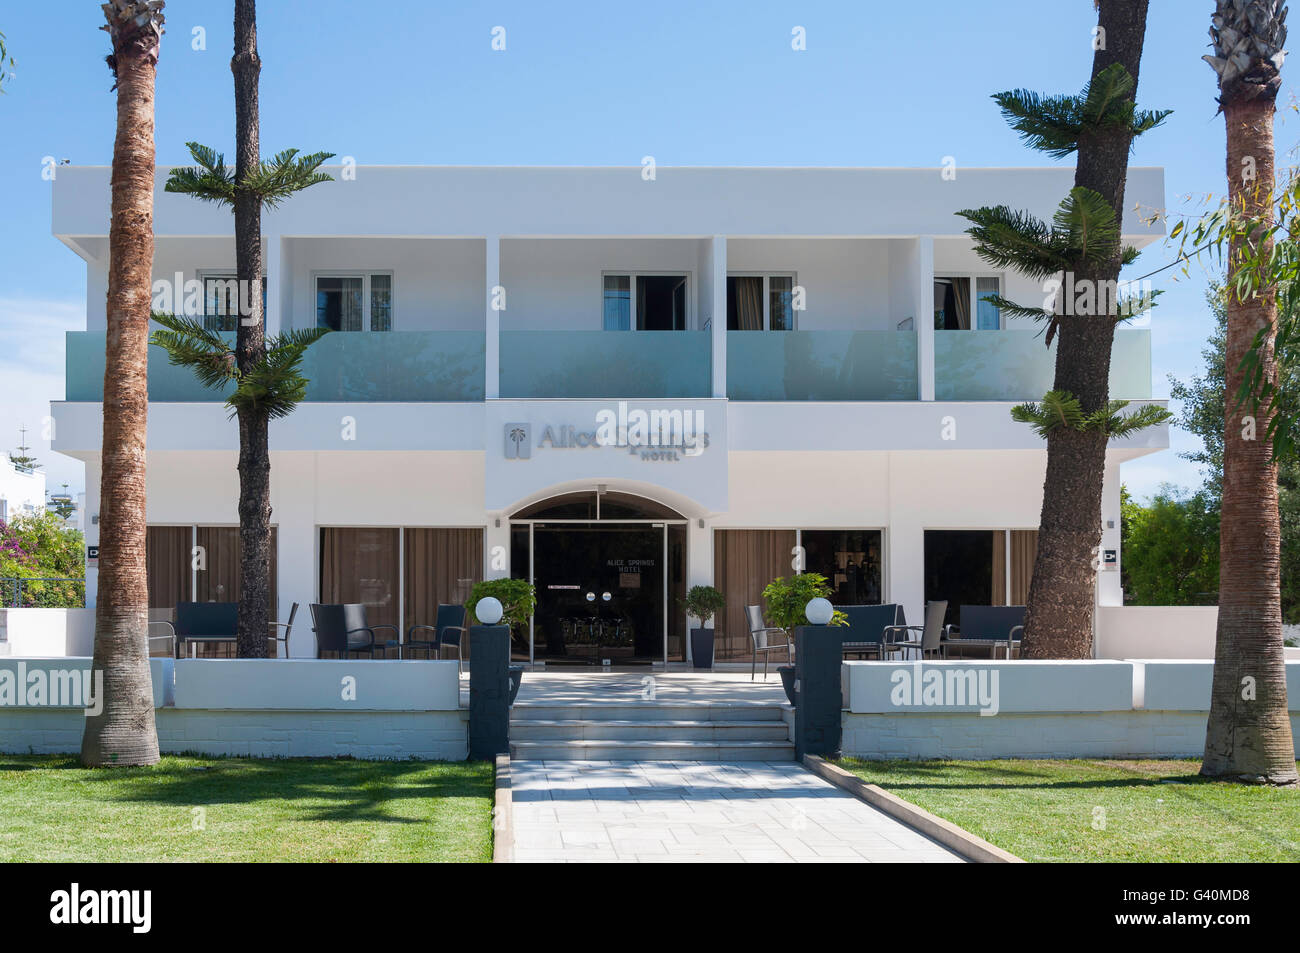 Entrance to Alice Springs Hotel, Lambi, Kos (Cos), The Dodecanese, South Aegean Region, Greece - Stock Image